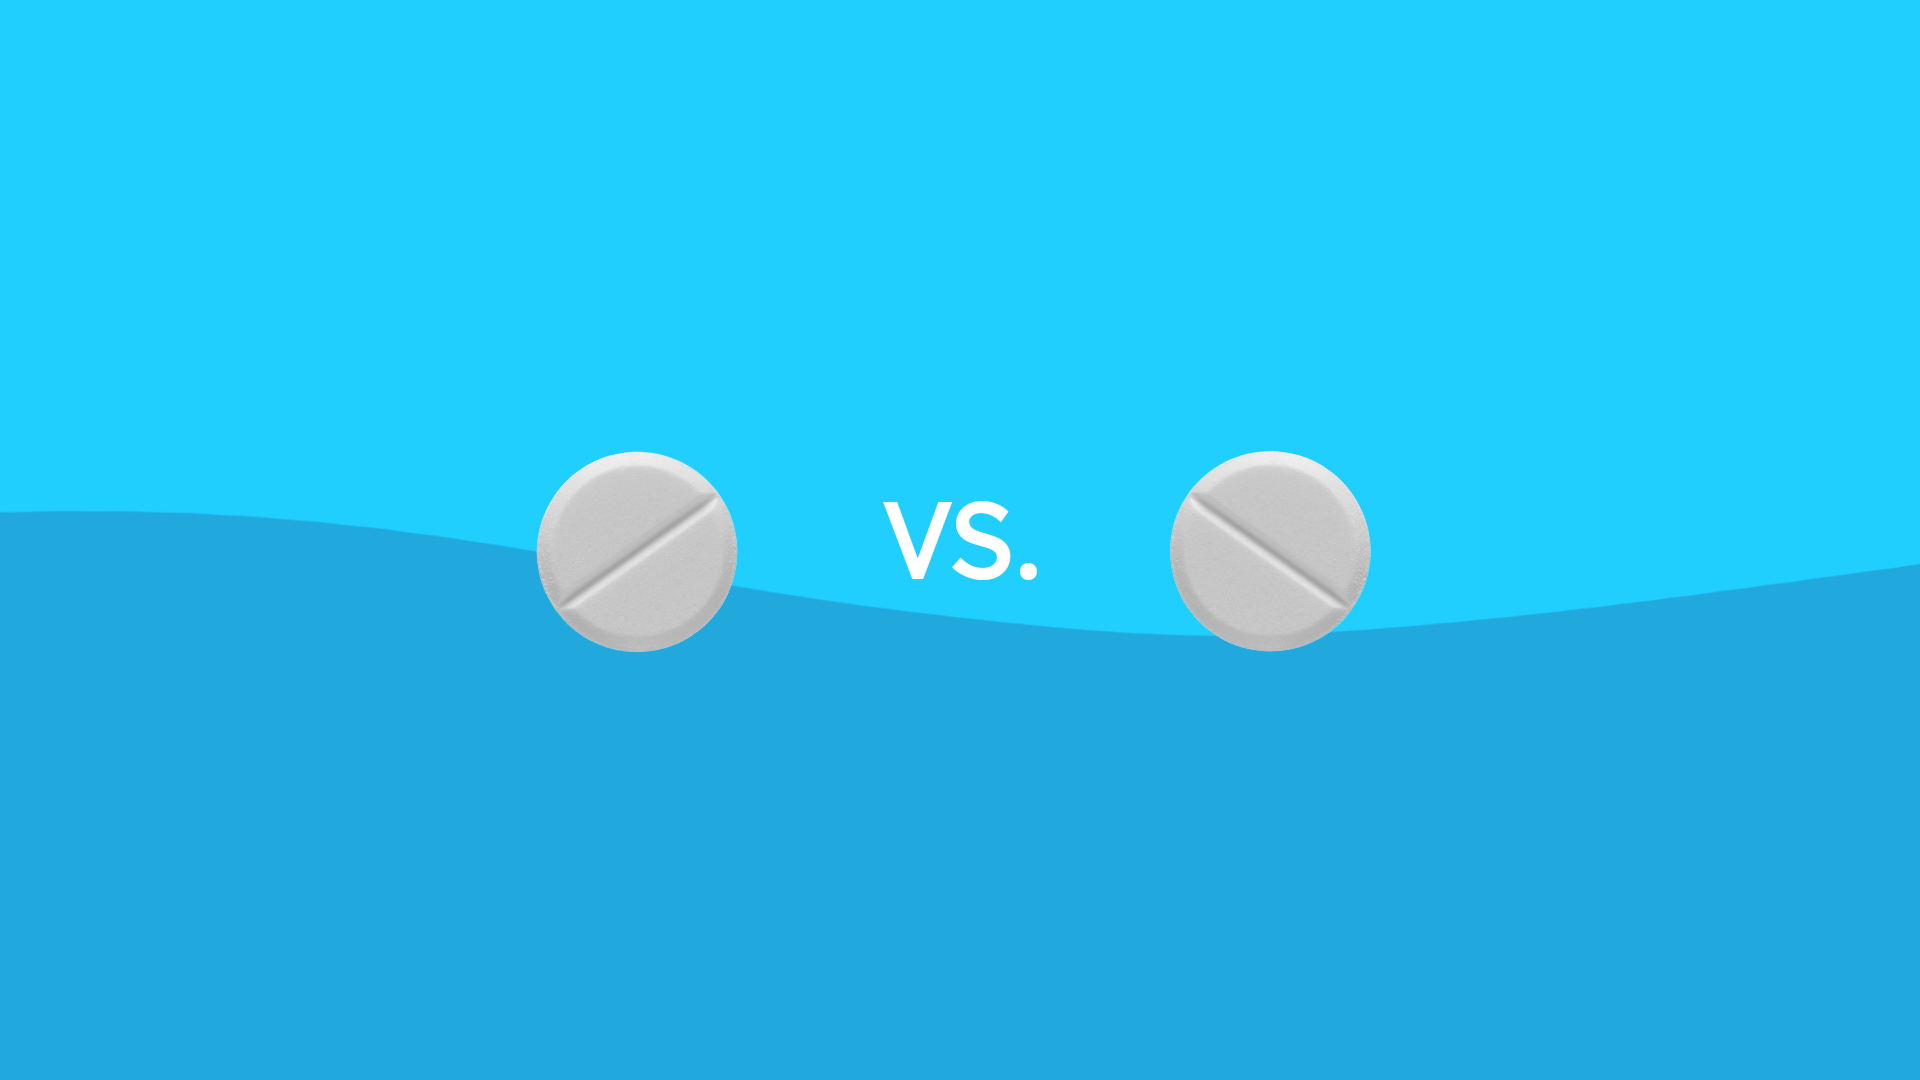 Zanaflex vs. Flexeril: Differences, similarities, and which is better for you